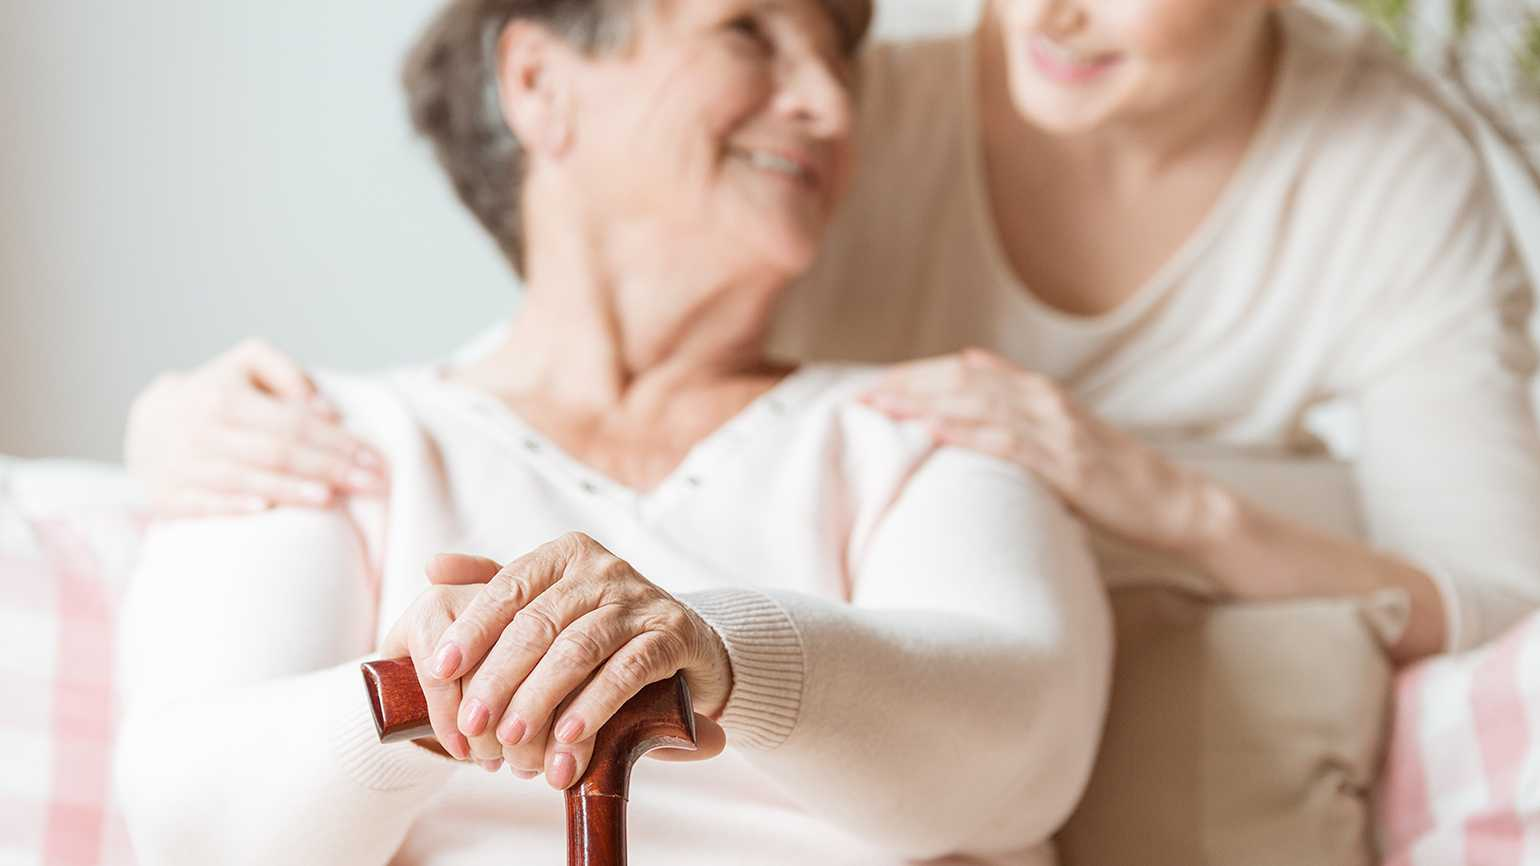 6 Lessons Learned Through Caregiving